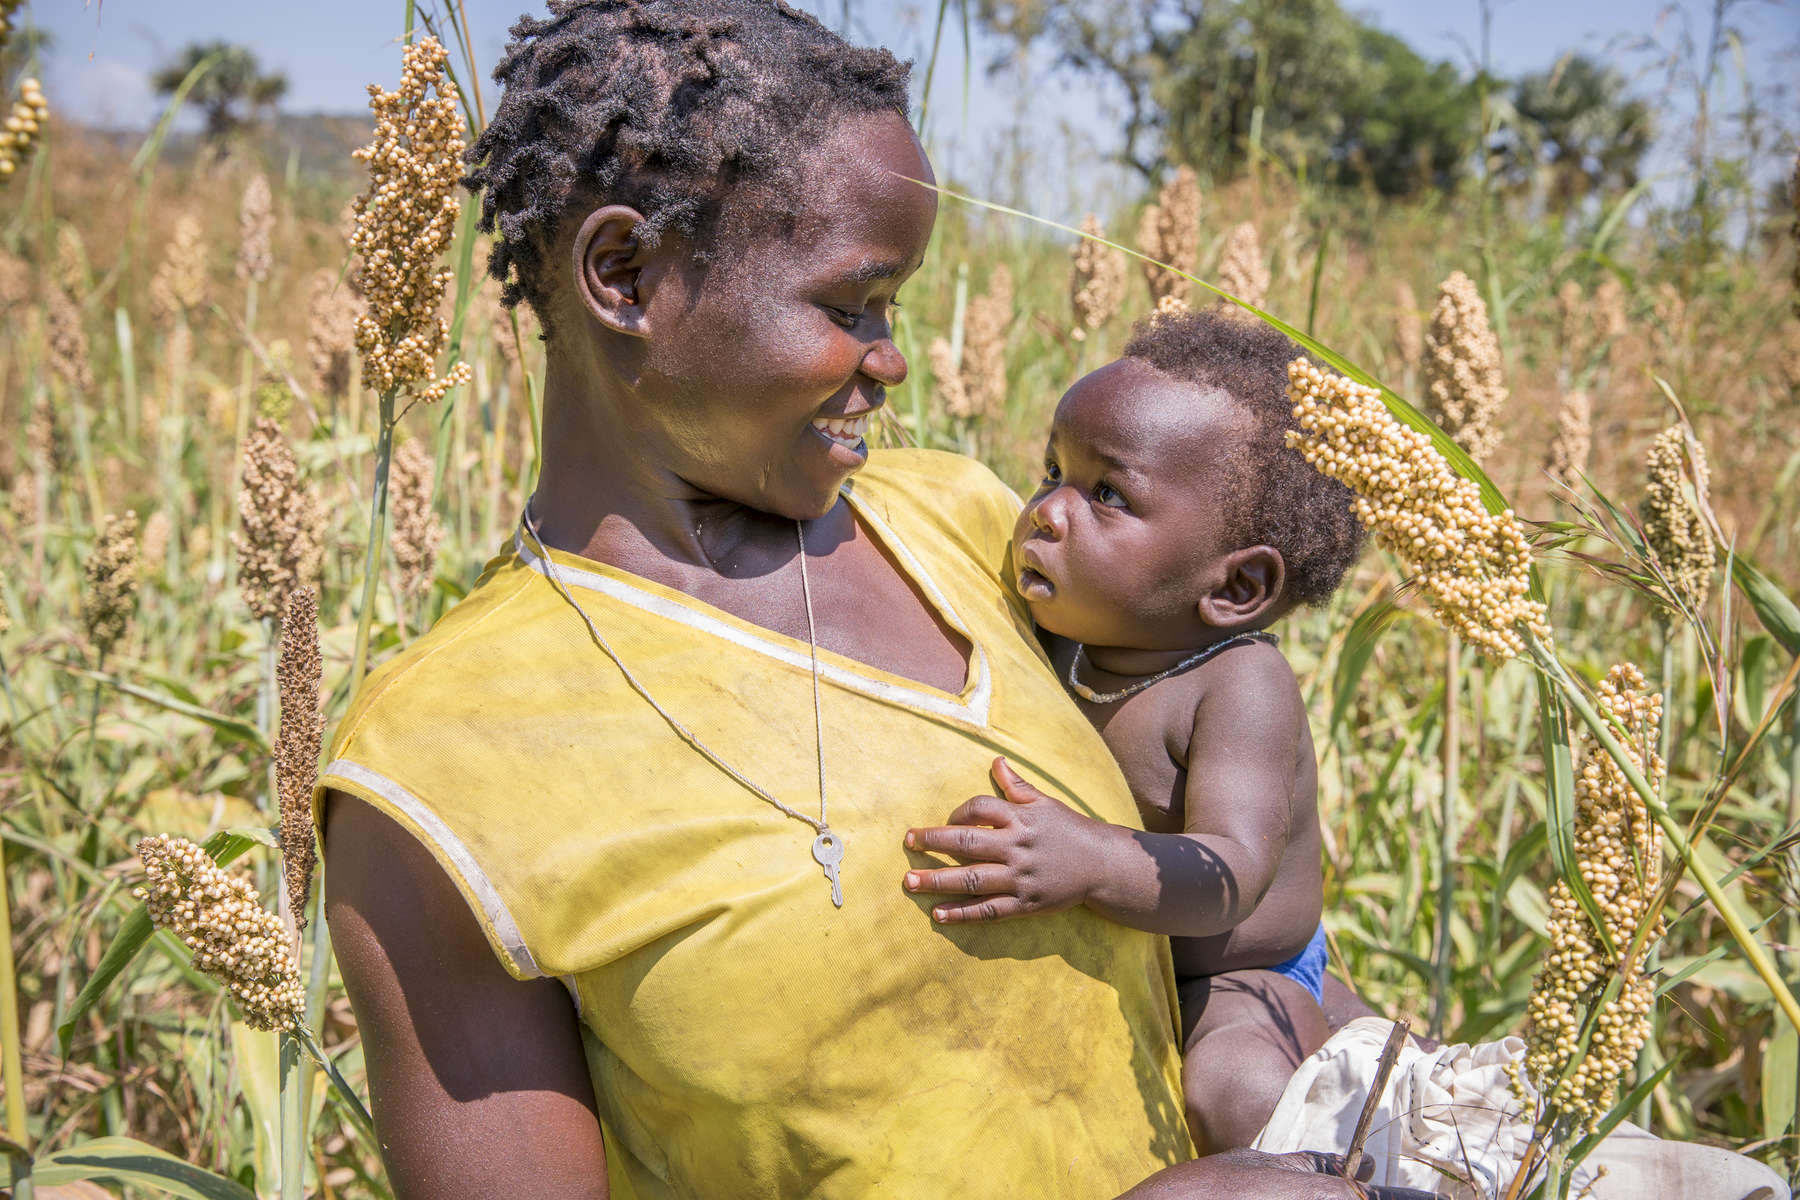 Bayoa Dominica, 24, and her 7 month-old son Good Lucky Haron stand in a field of white sorghum. Bayou is a member of a Mercy Corps supported farmers group, composed of both host community Ugandans and South Sudanese refugee men and women, who work together for better crop production. South Sudanese refugees are given small plots of land, and Ugandan nationals have larger plots but very few people to work the land. Together they combine their resources and labor. Mercy Corps provided each farmer with a voucher for 20,000 Ugandan shillings, and many of the farmers groups pooled their vouchers together to buy greater quantities of seeds and more products. Mercy Corps also organized a trade fair between the farmers and the agro dealers so that they could spend their vouchers and purchase what they needed. Caroline Mandera is a Ugandan widow with 7 children, and has been part of the group for 3 months. She says {quote}I joined the group because in the group we have savings. I use the money from the group to pay school fees. I also join hands with the farmers to produce some of our products. We pick and then we sell them.{quote}  Mercy Corps will also be supporting these farmers groups to establish VSLAs (Village Savings and Loans Associations) so that members will be able to begin to save some of the money they earn through the sale of crops.